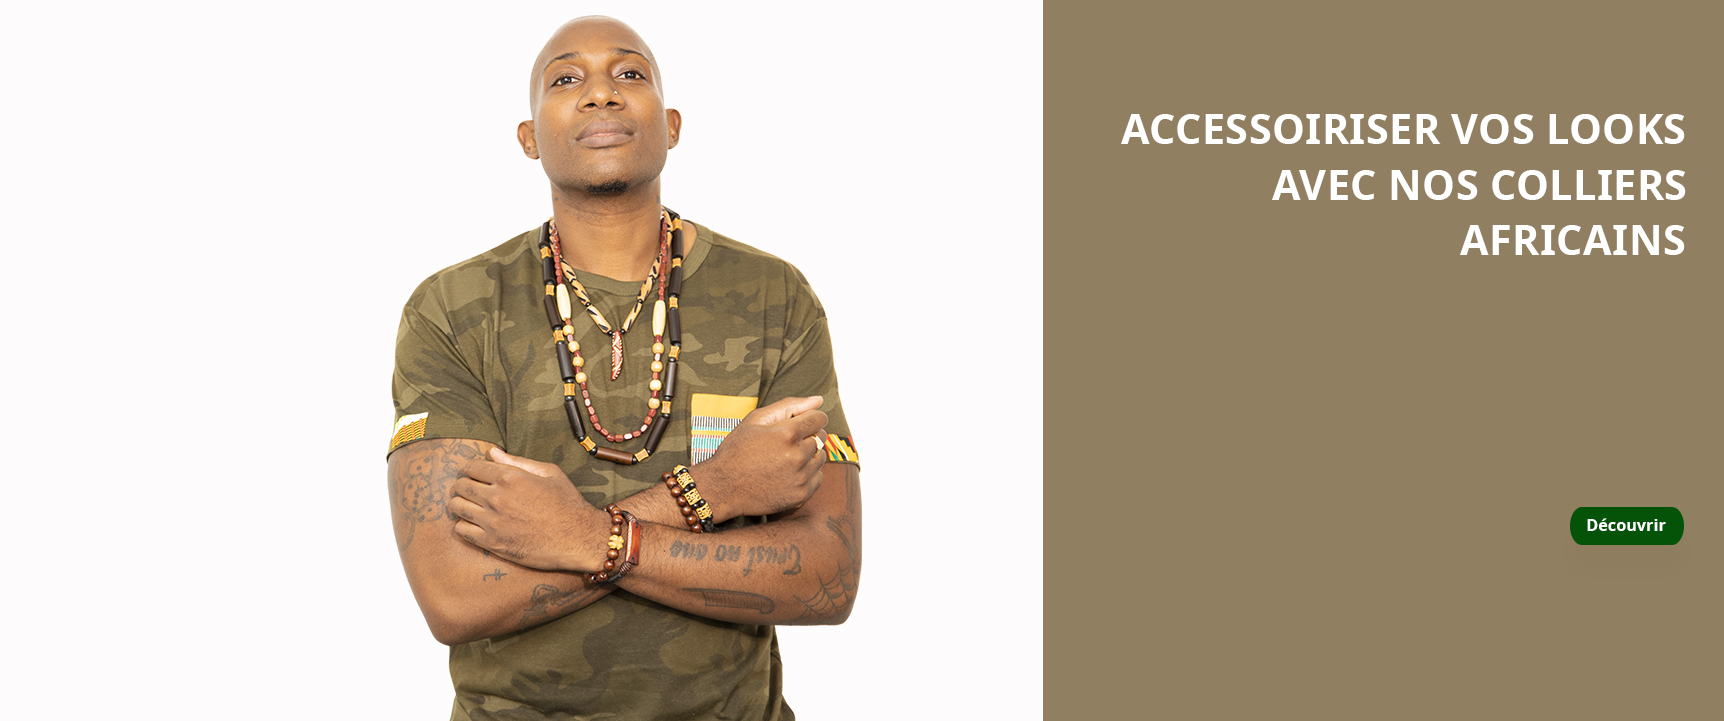 Accessoriser vos looks avec nos colliers africains